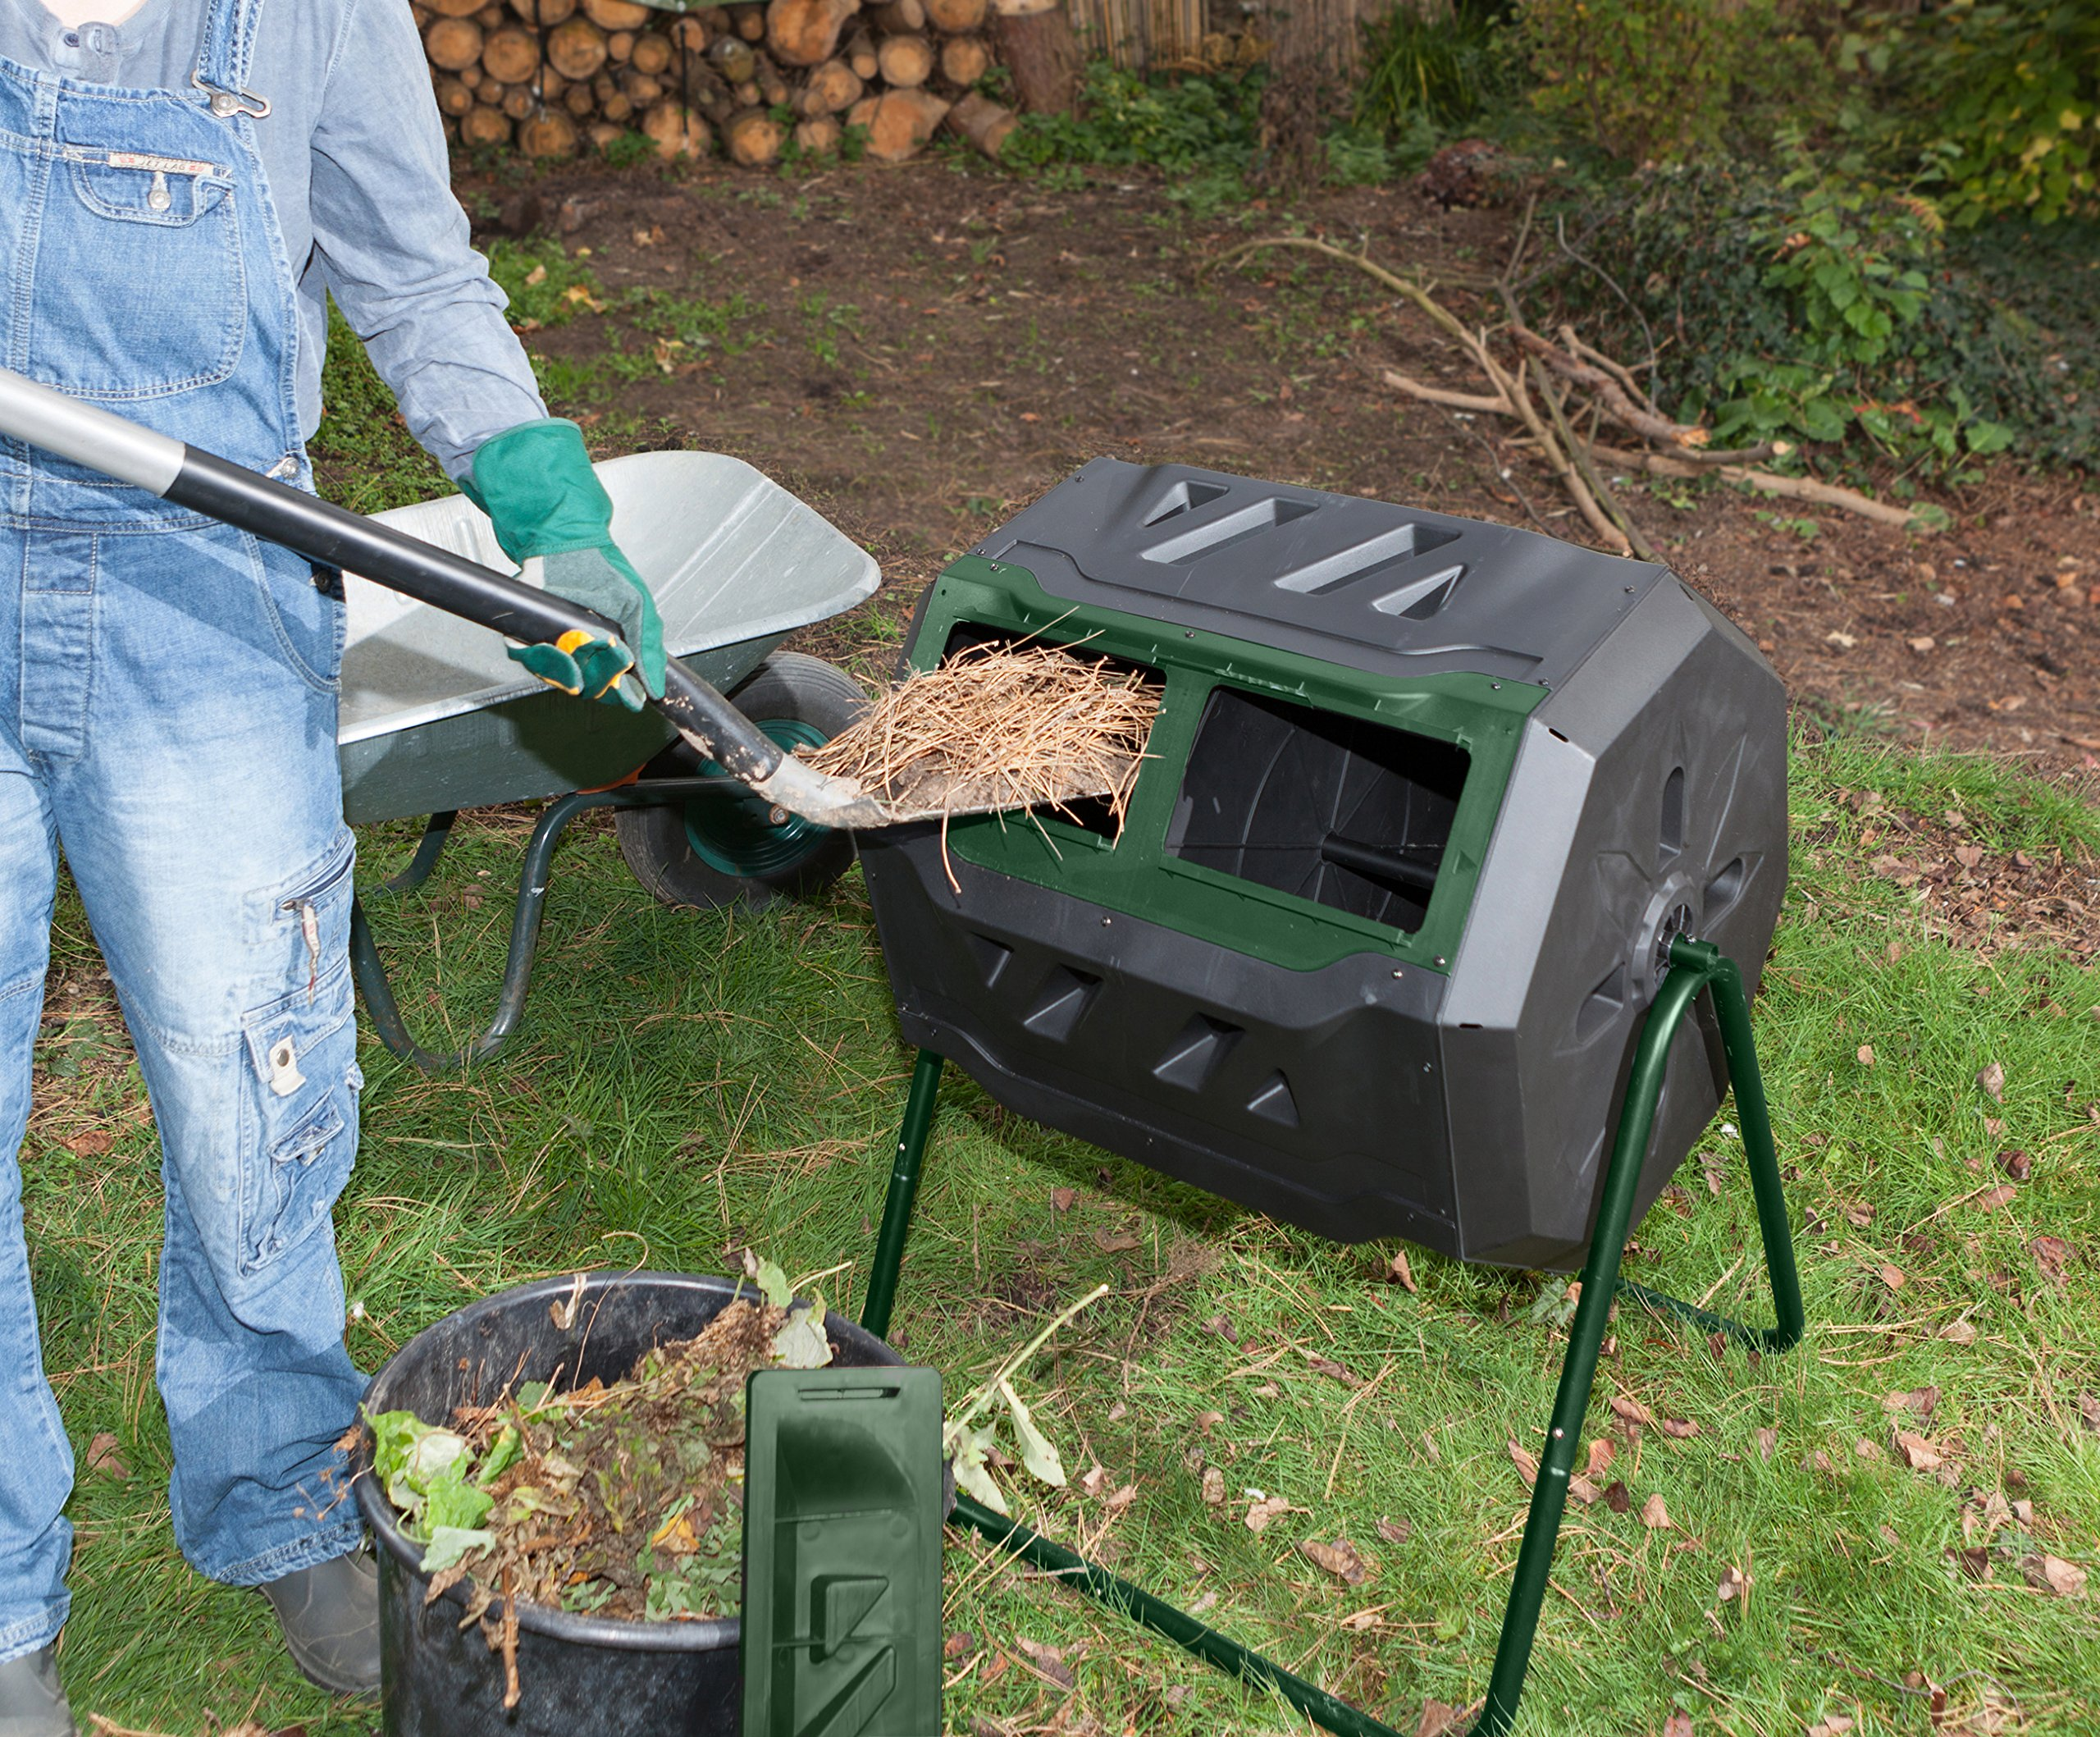 Exaco Trading Company Exaco Mr.Spin Compost Tumbler - 160 Liters / 43 Gallon, Dual Chamber Composter On Two-Leg Stand by Exaco Trading Company (Image #1)